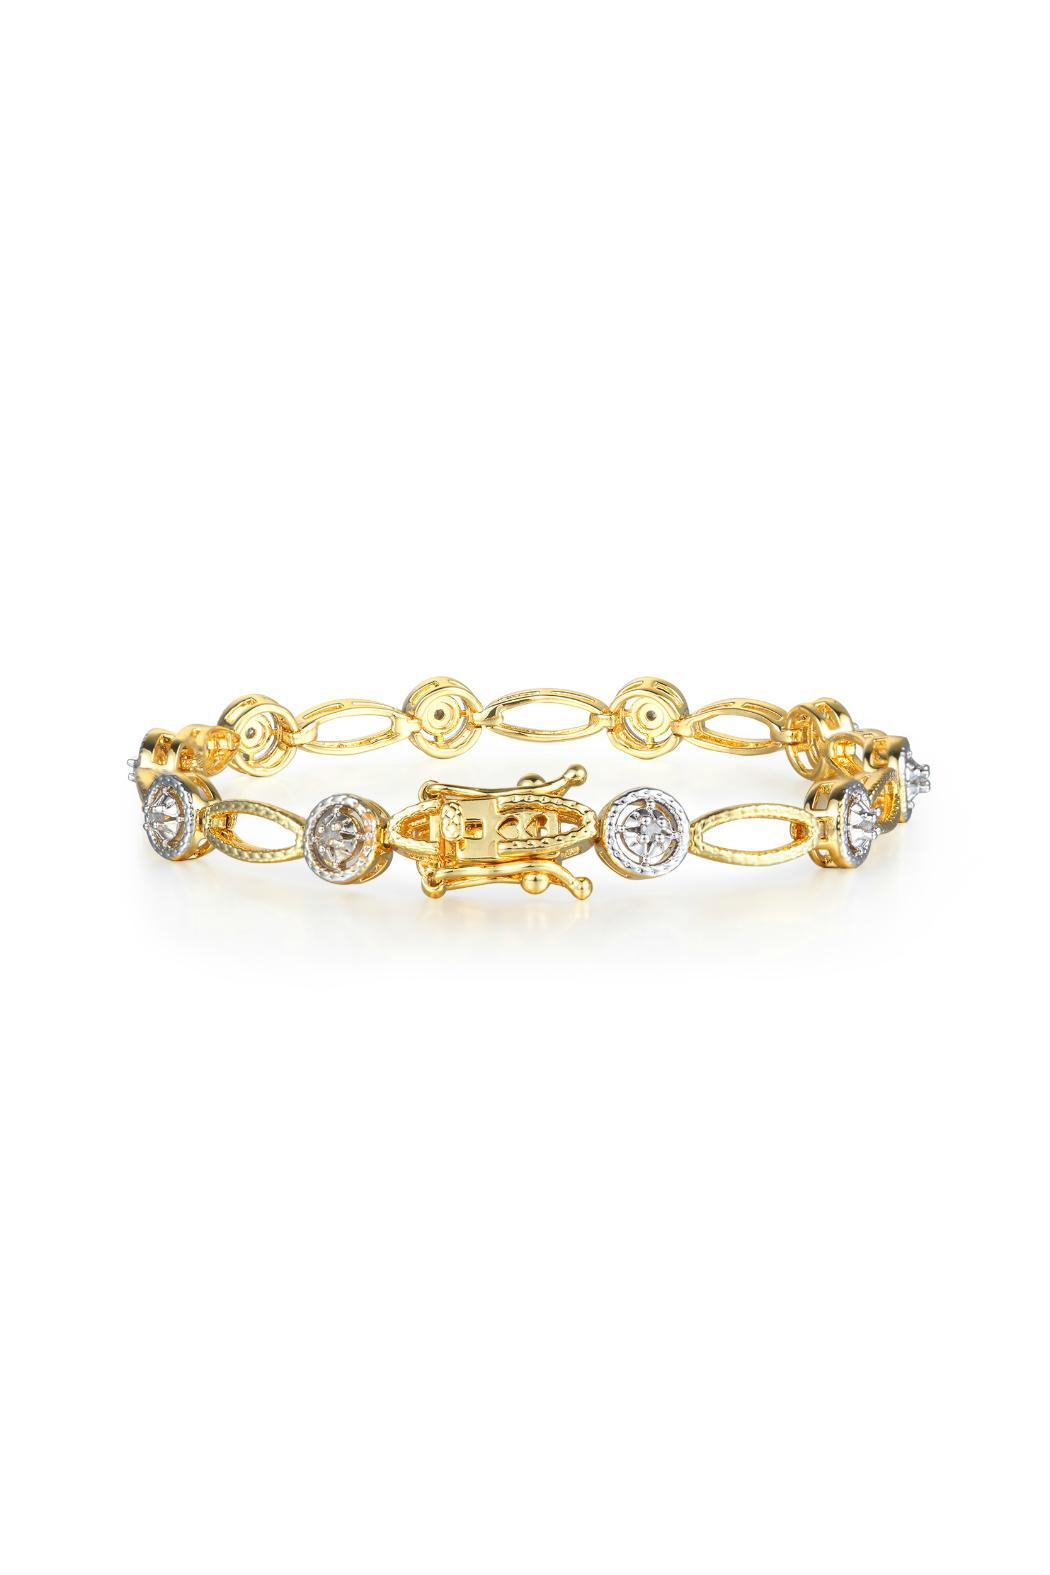 Ct Gold Diamond Bracelet